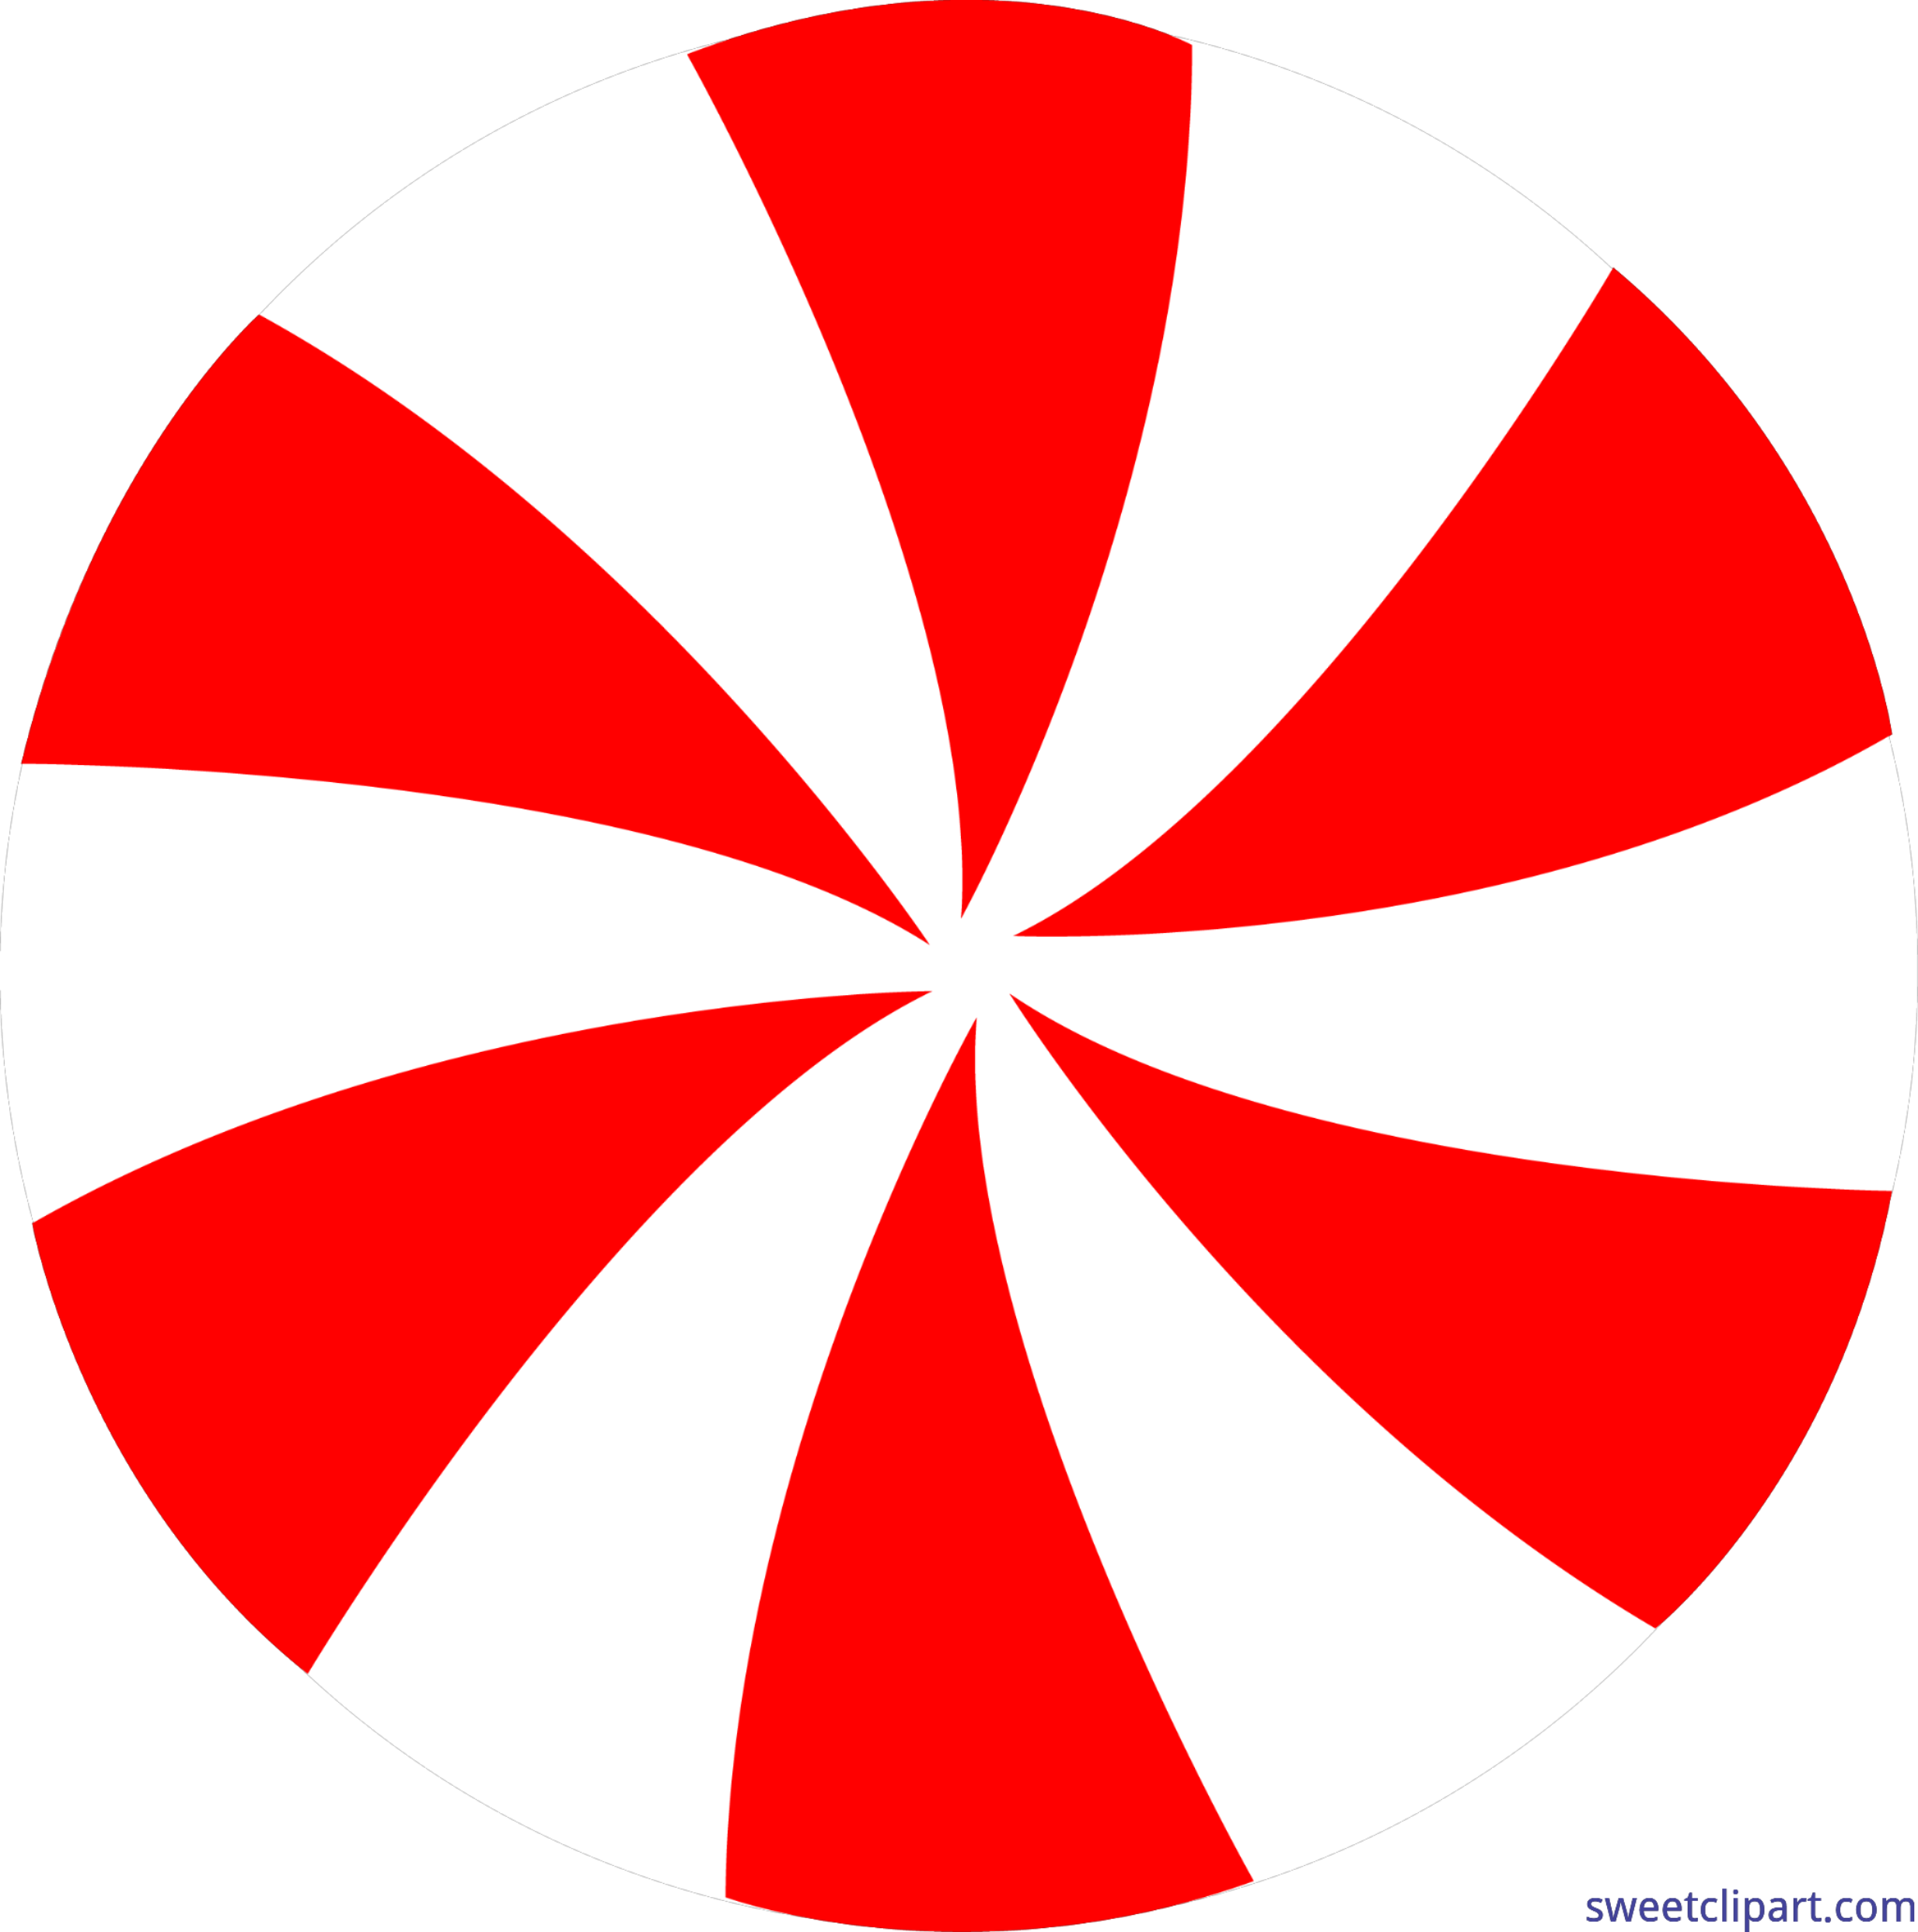 Pinwheel drawing. Candy peppermint red clip